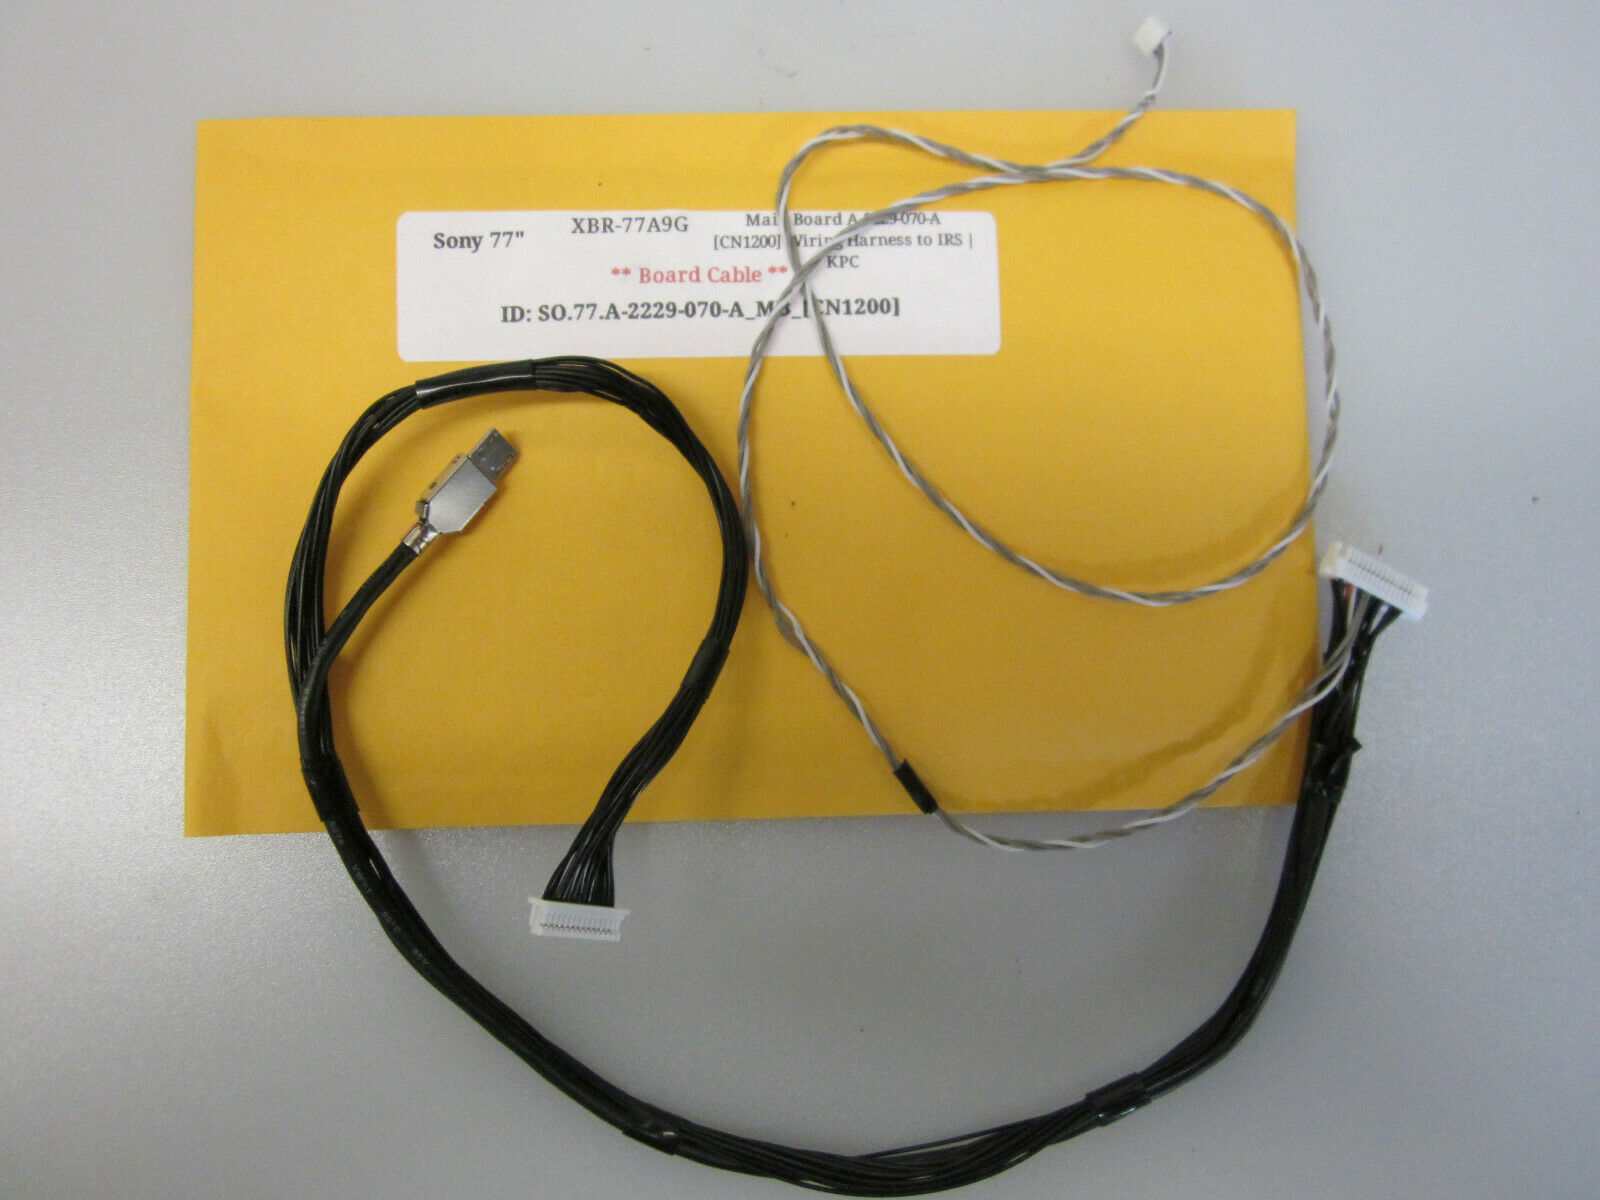 "Primary image for Sony 77"" XBR-77A9G Main Board A-2229-070-A [CN1200] Wiring Harness to IRS 